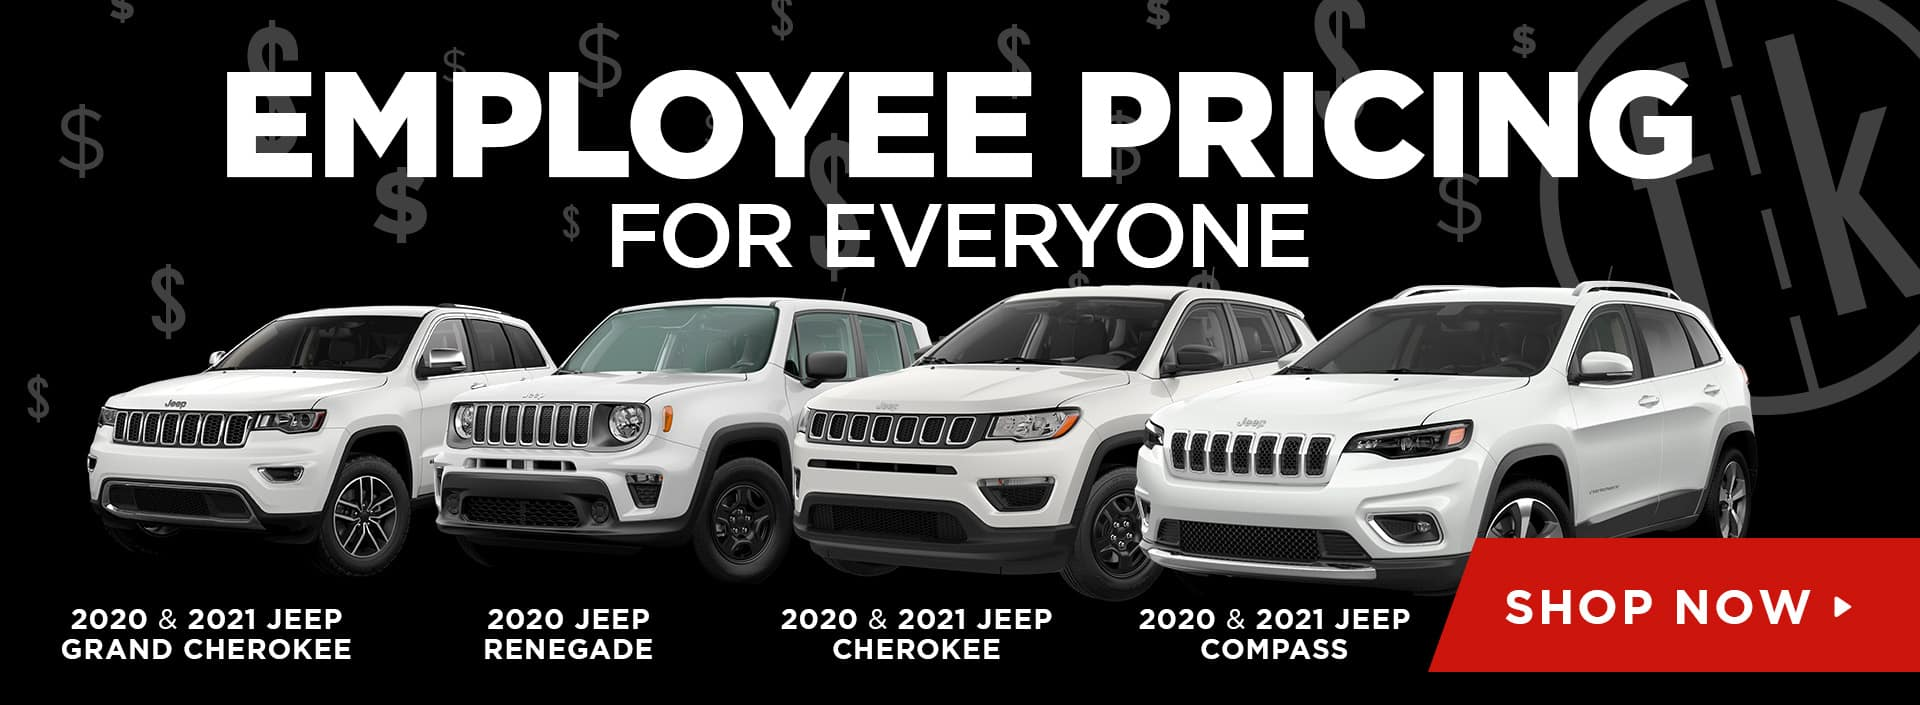 Employee Pricing For Everyone On Select Jeep Models